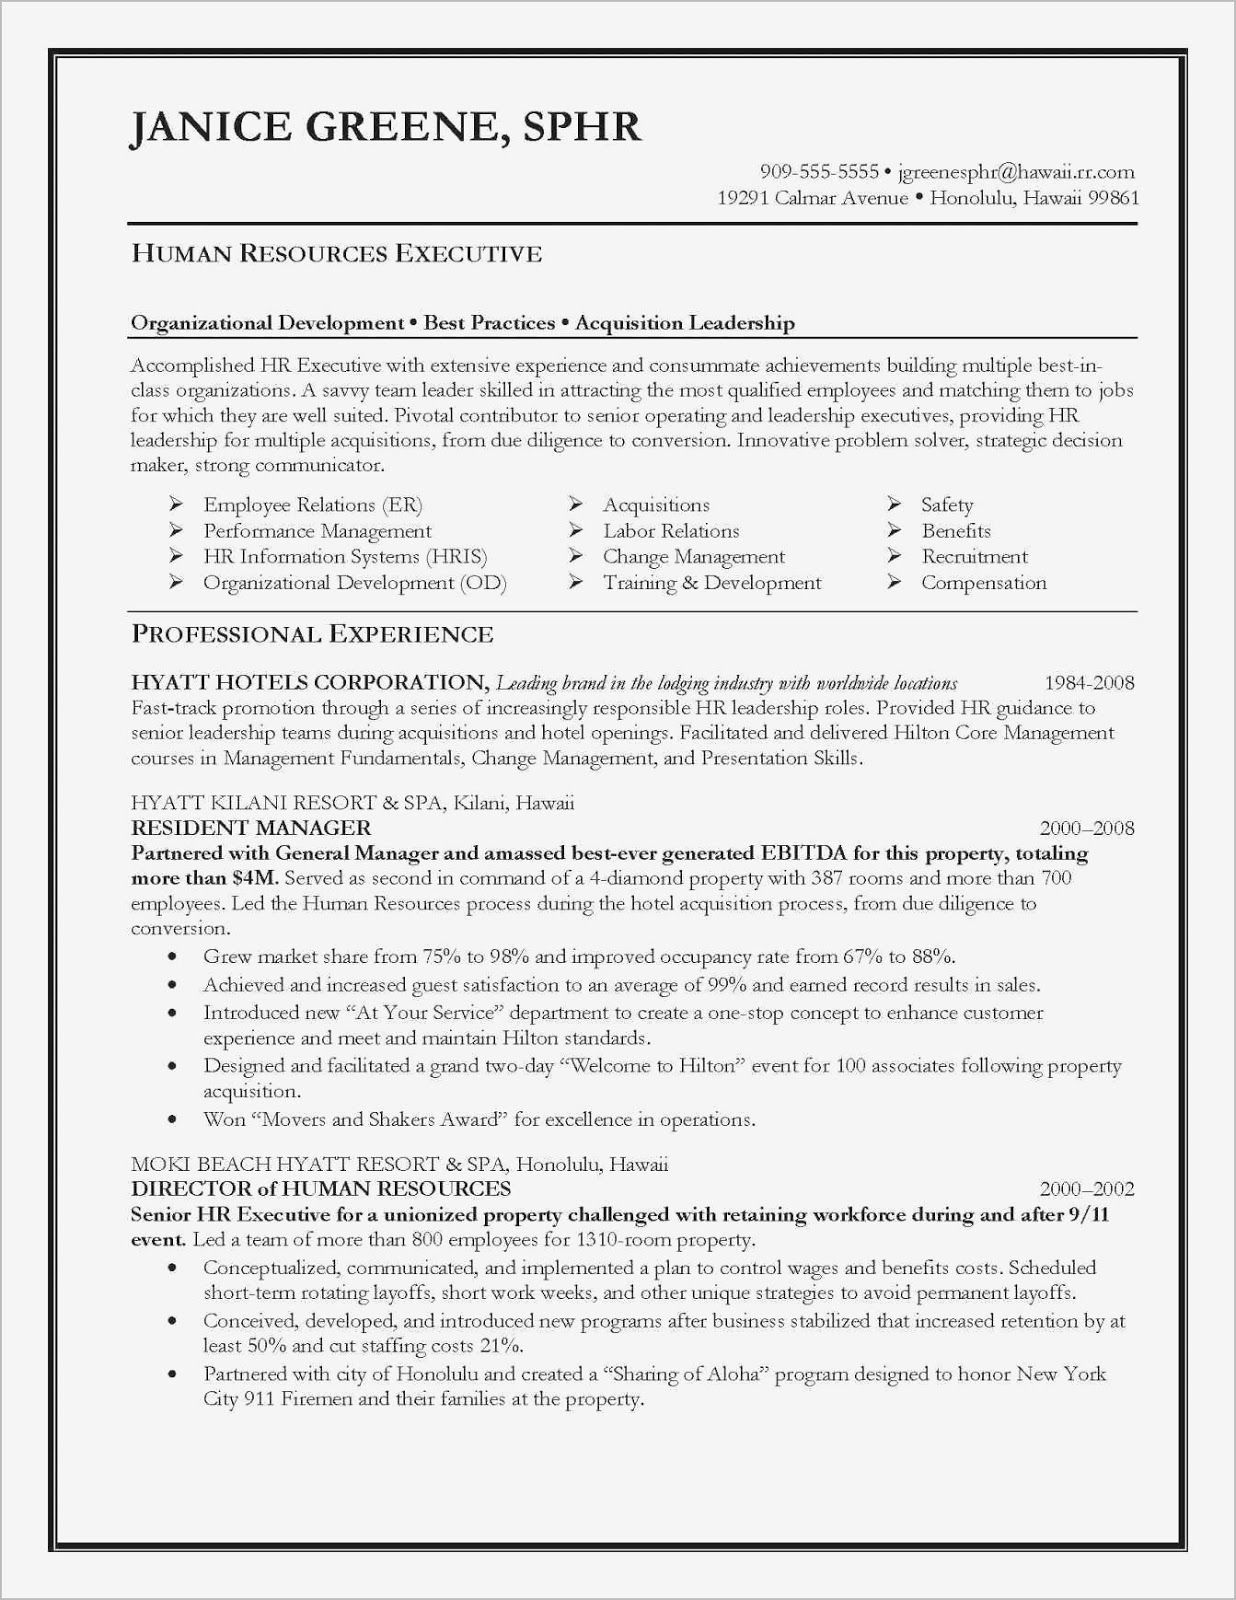 benefits manager resume summary cover letter res examples human resources skills for Resume Benefits Manager Resume